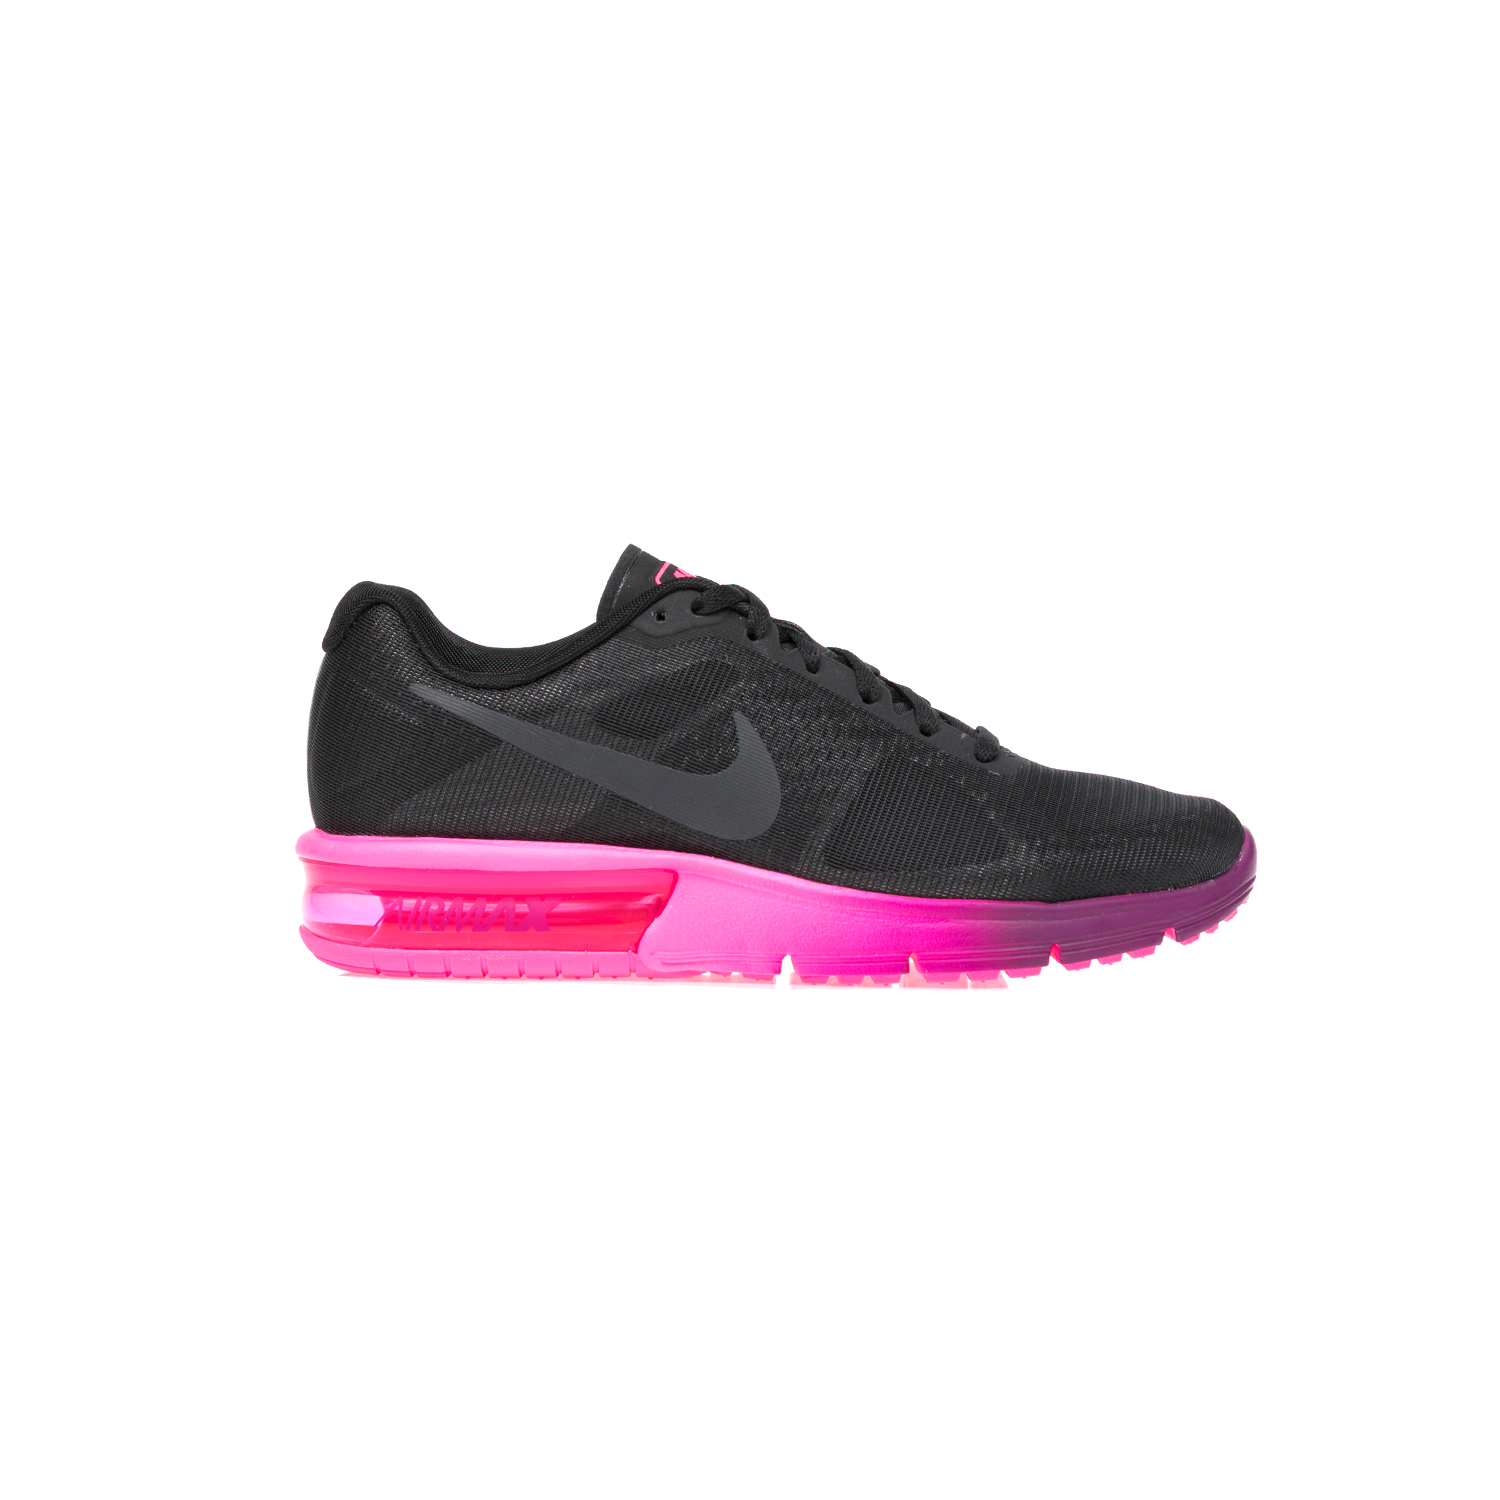 NIKE – Γυναικεία παπούτσια NIKE AIR MAX SEQUENT μαύρα